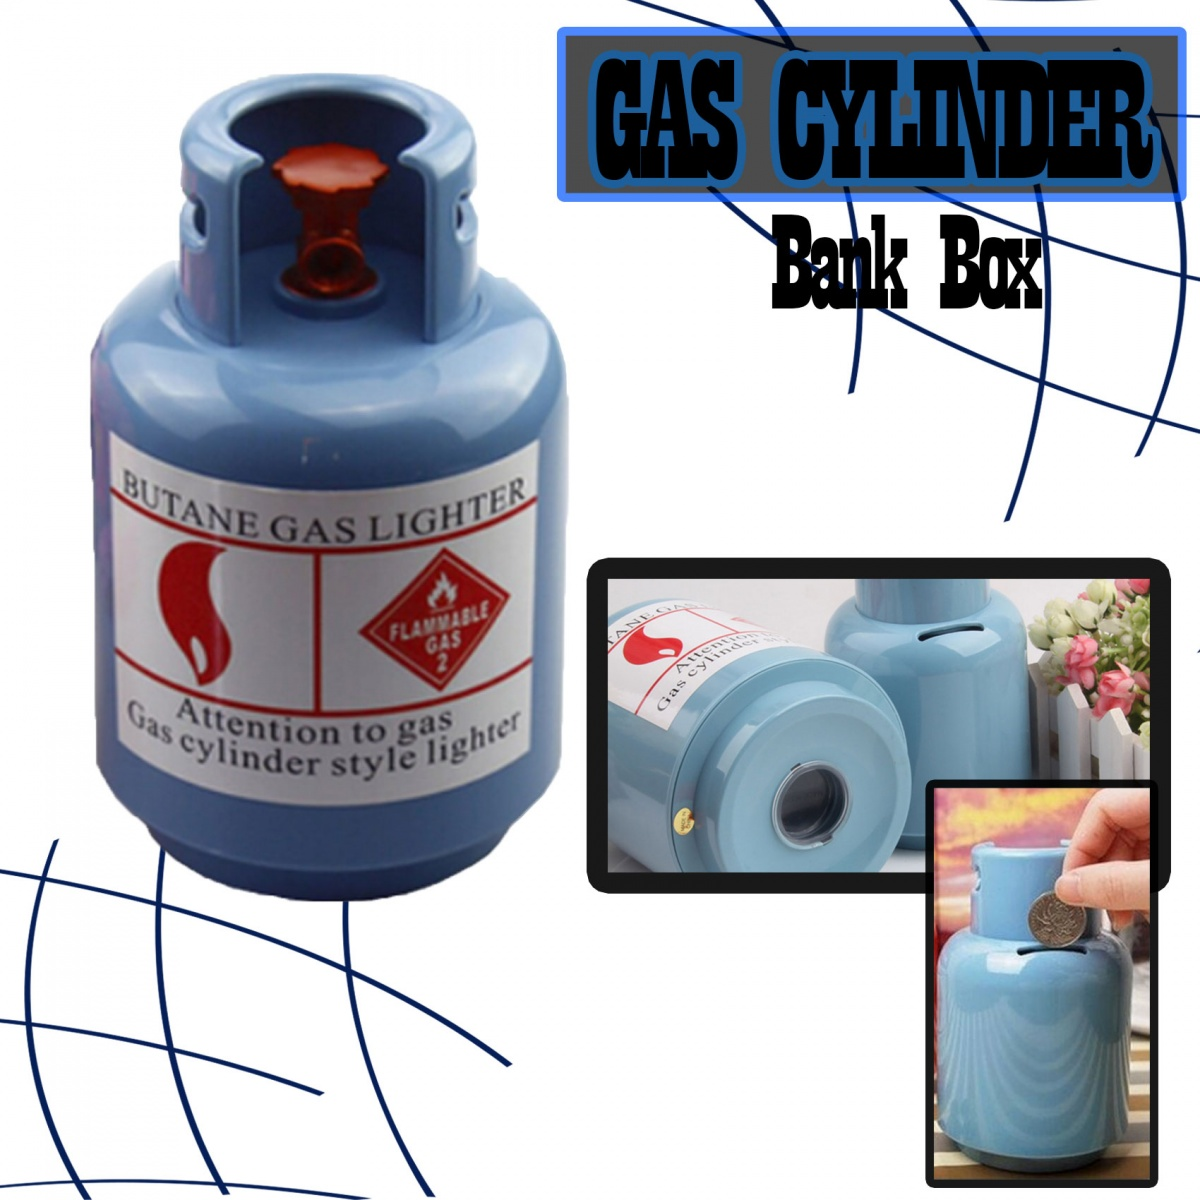 LPG Gas Tank Bank Box  - Blue